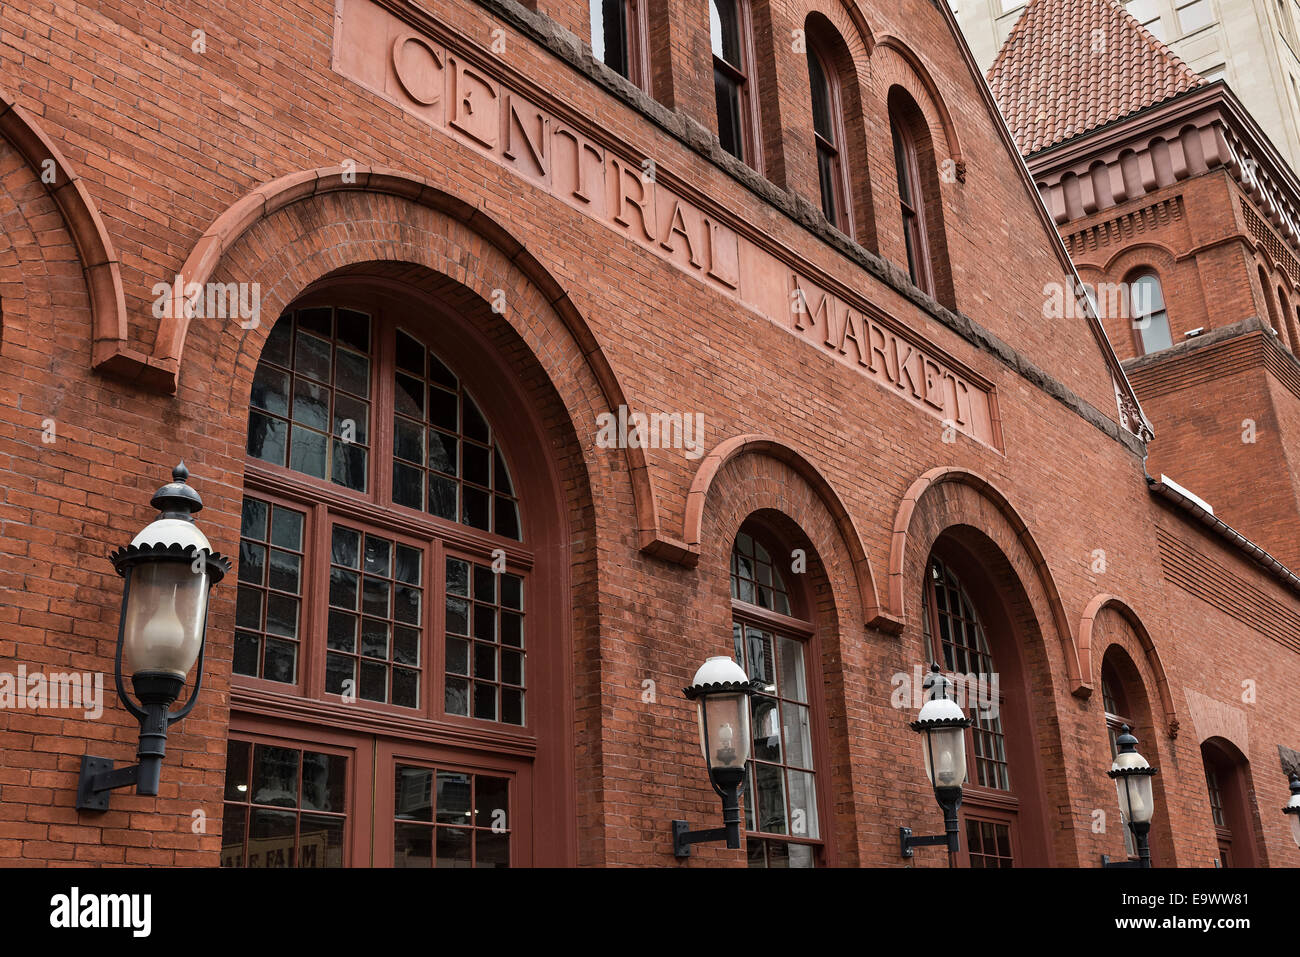 The Central Market, The country's oldest farmers' market, Lancaster, Pennsylvania, USA - Stock Image